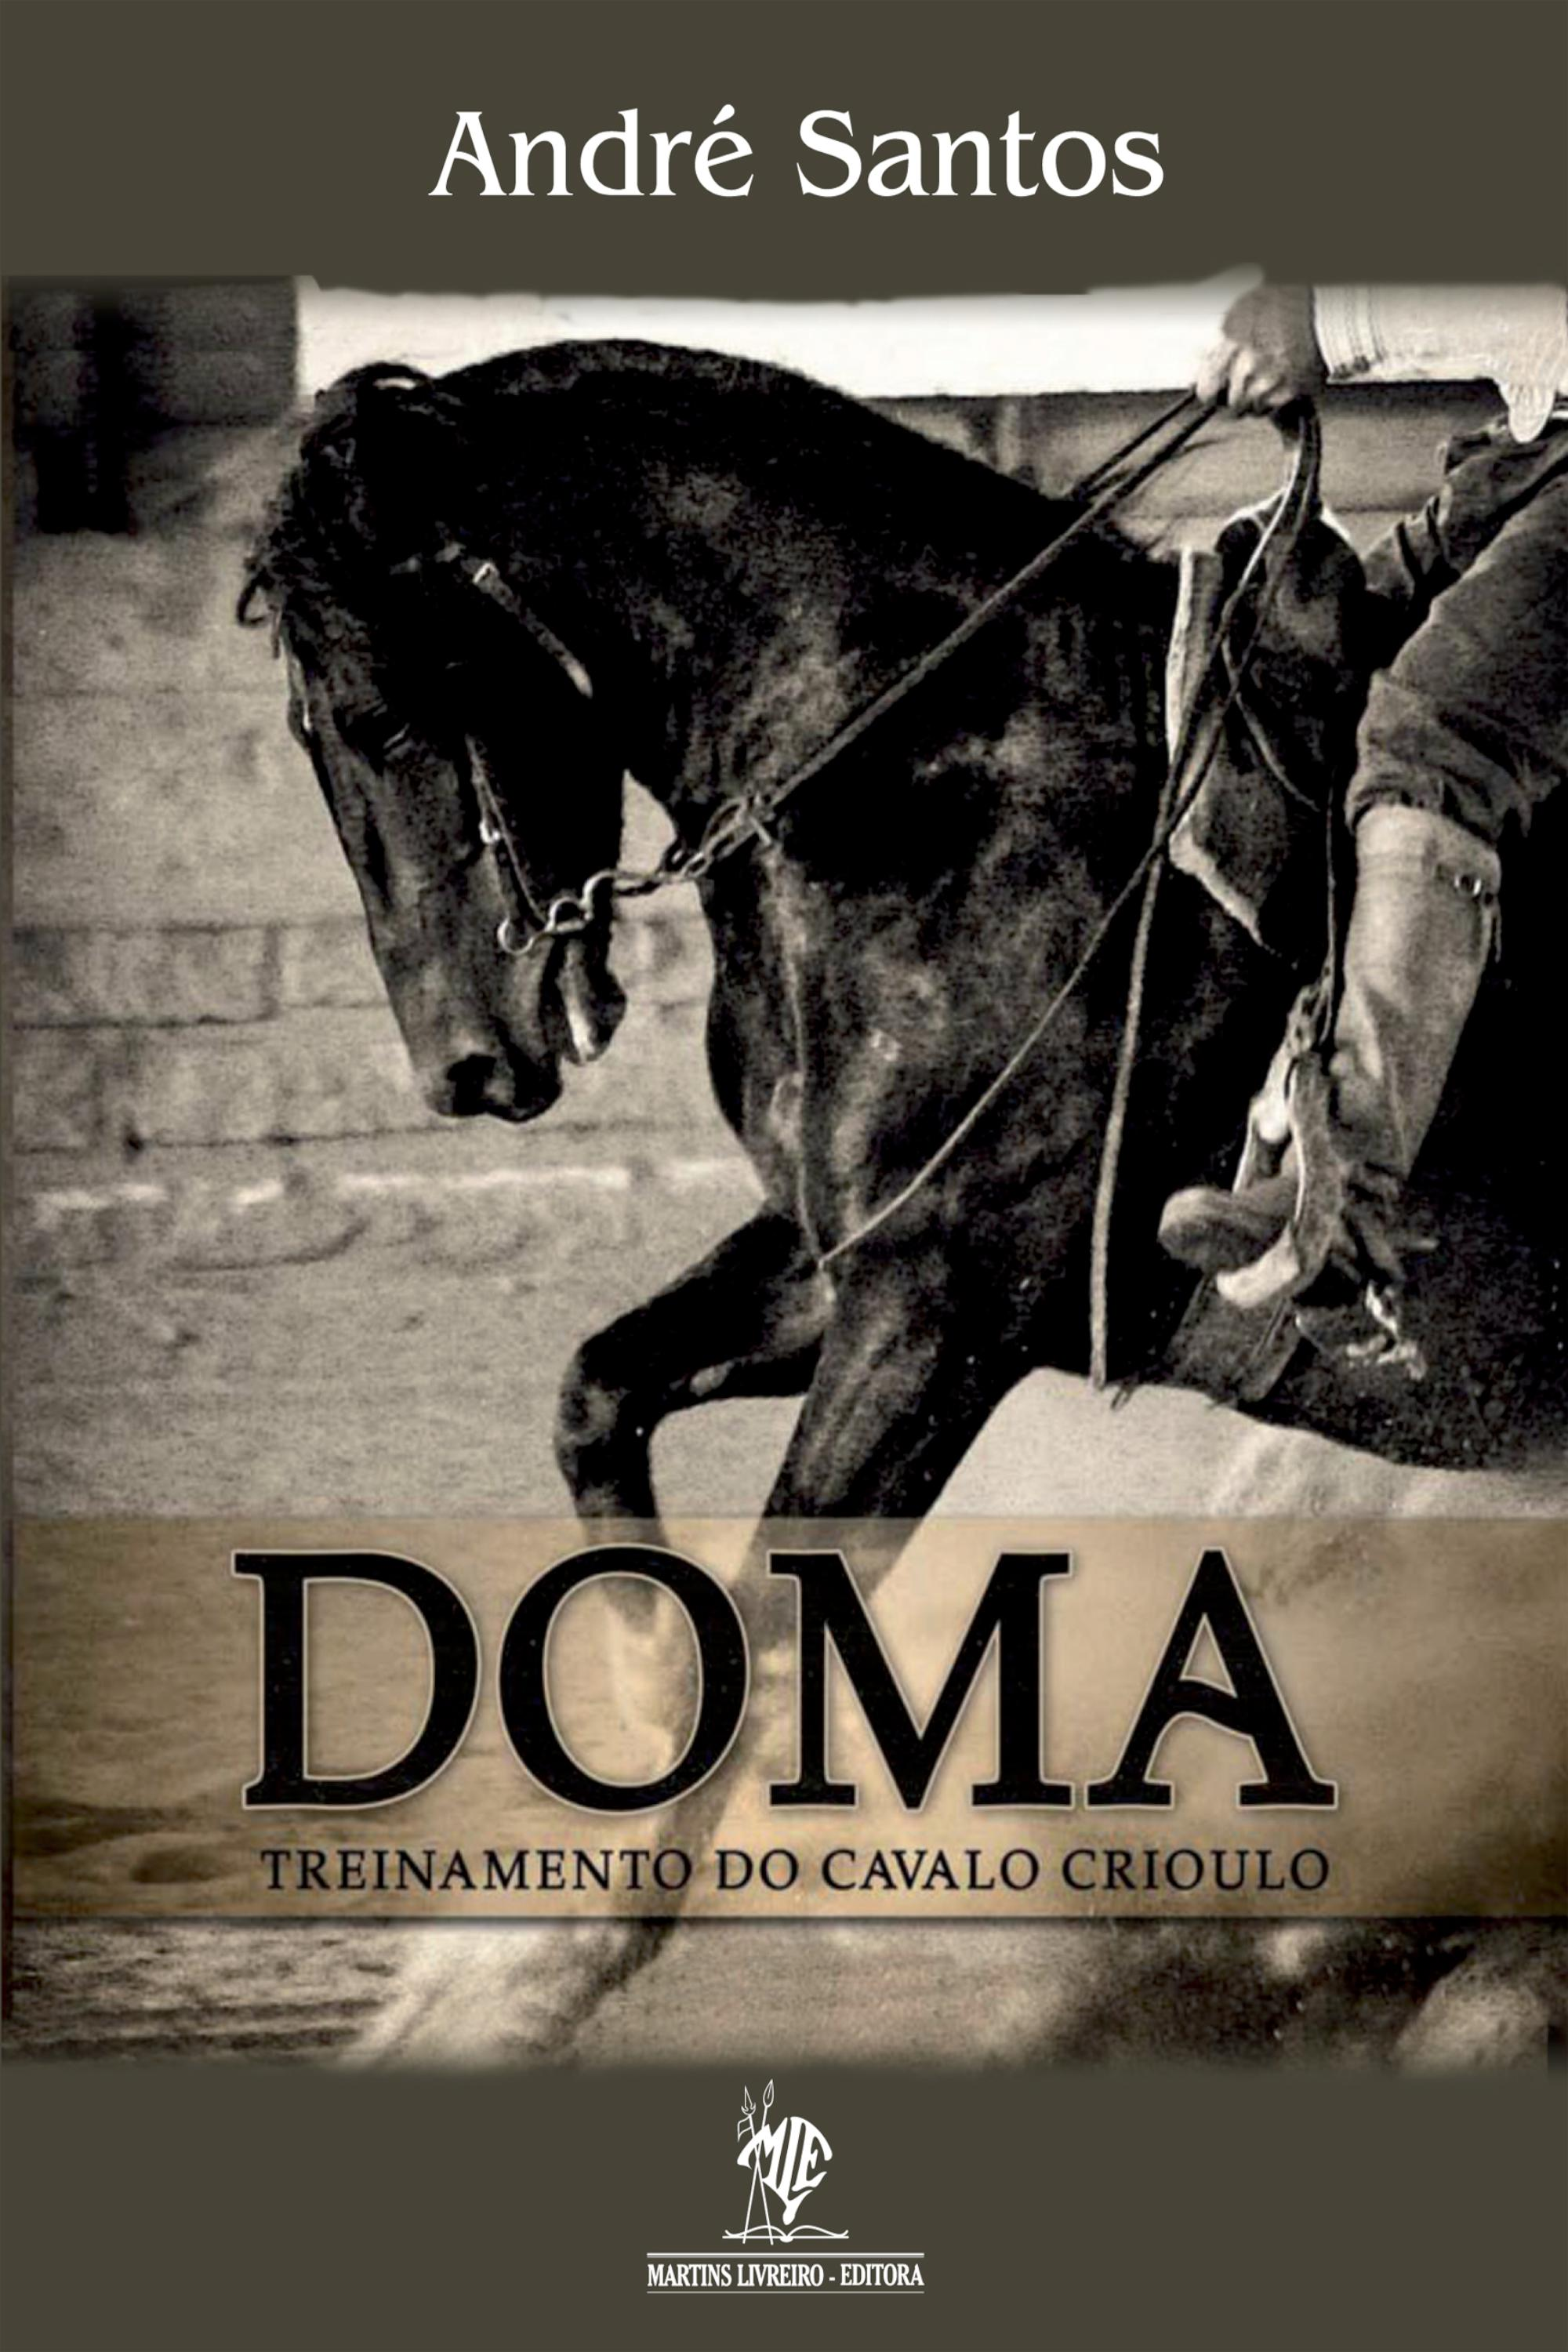 Capa do ebook Doma e Treinamento do Cavalo Crioulo